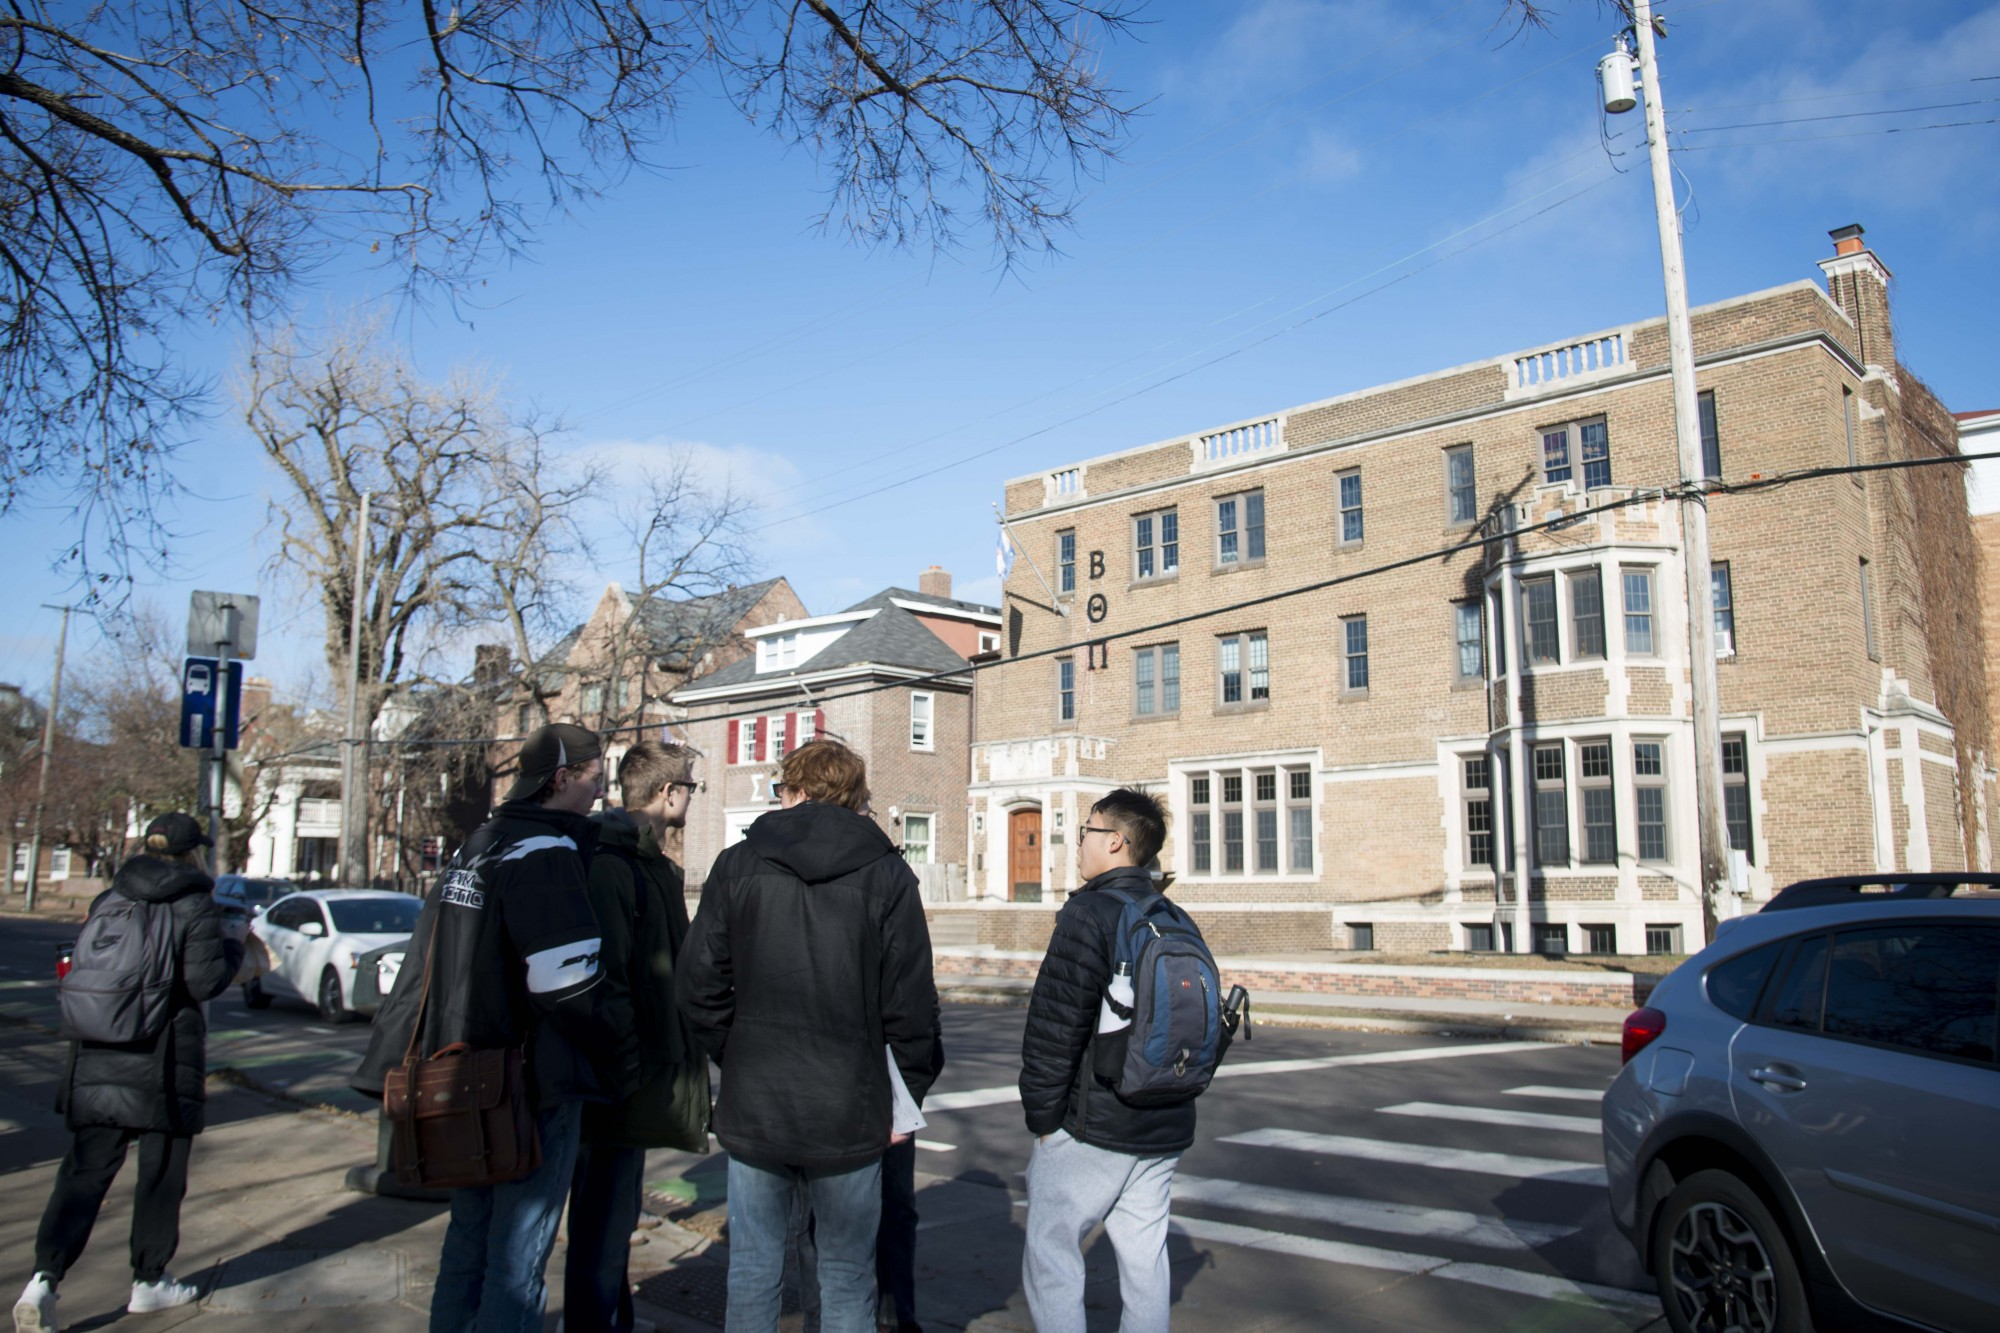 Frat Row, home to the majority of fraternities on campus, as seen on University Avenue Southeast on Friday, Nov. 22.